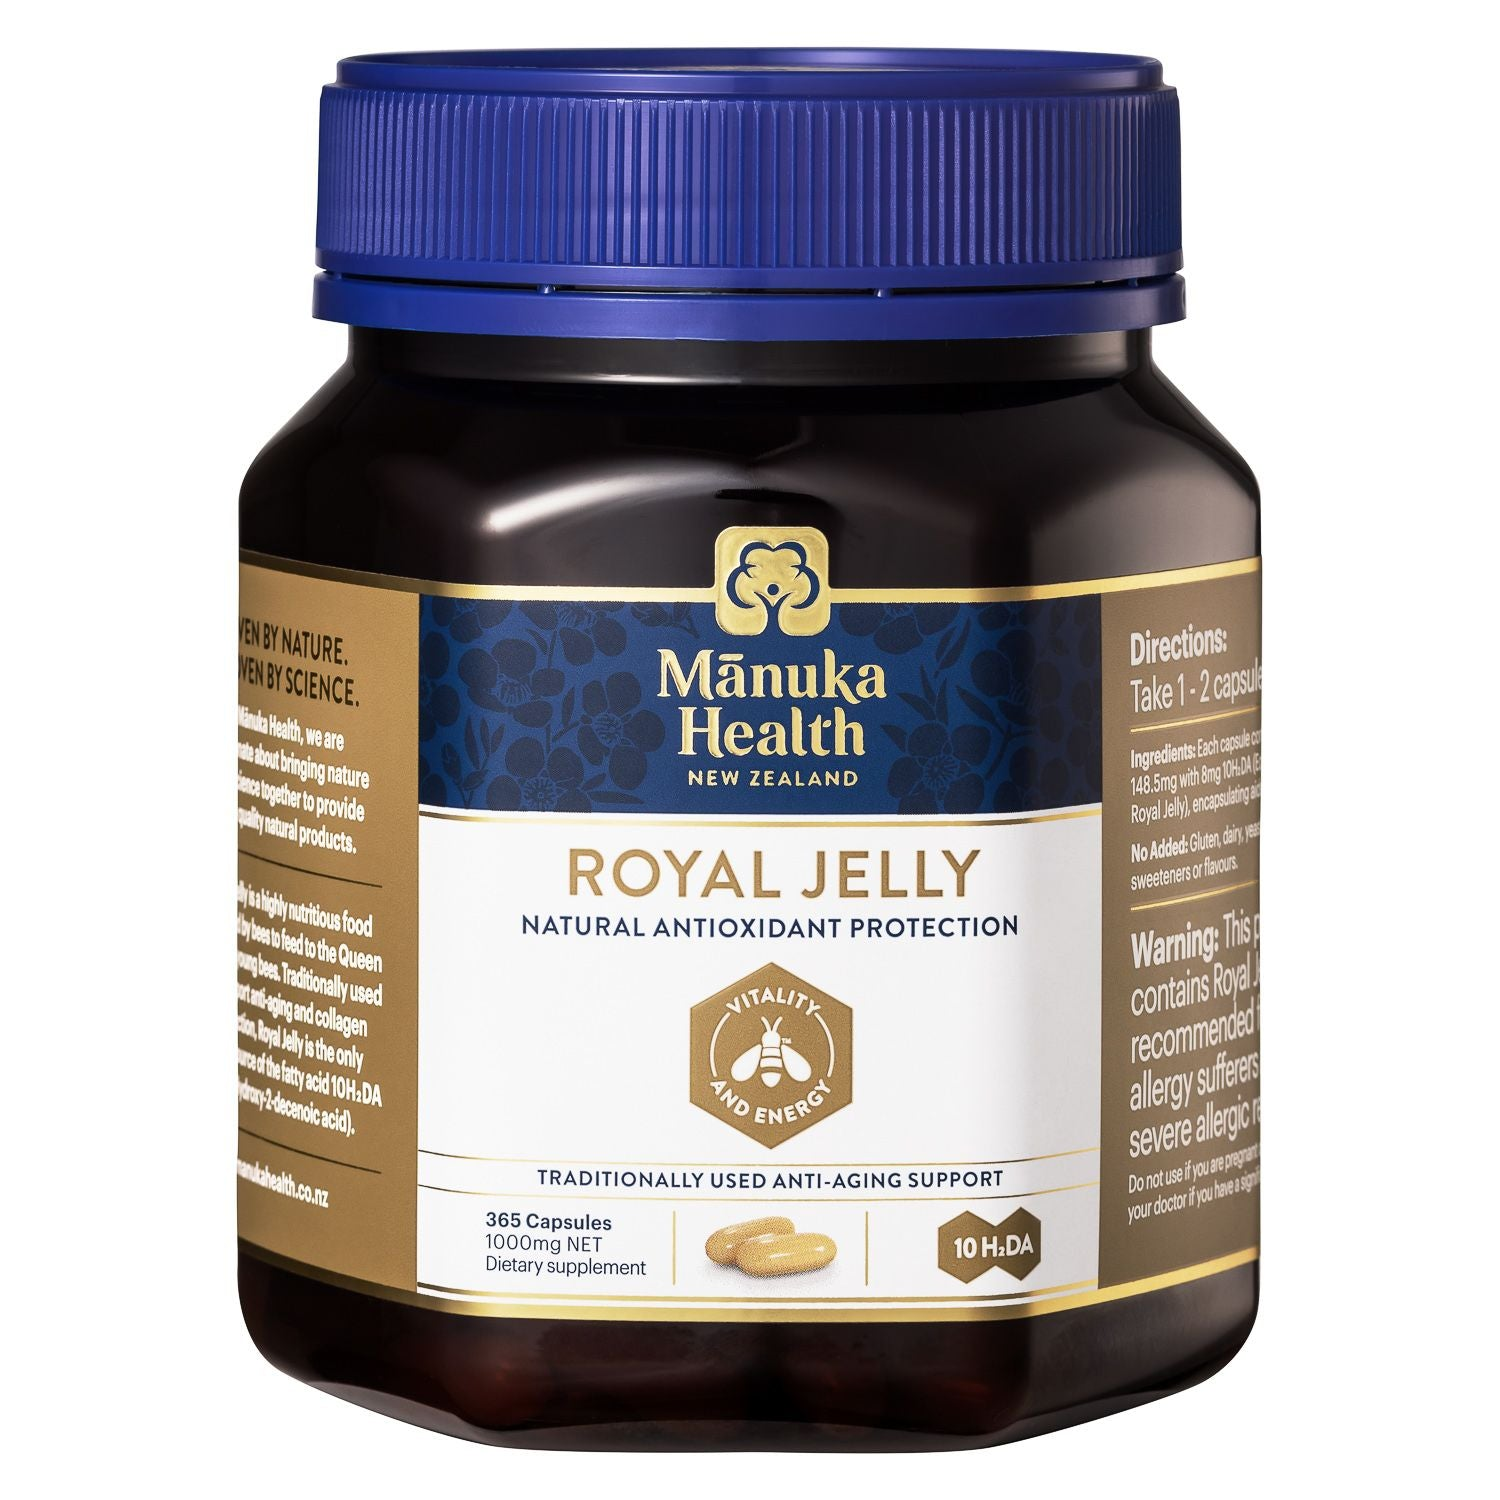 Royal Jelly Capsules - Health & Supplements | Manuka Health